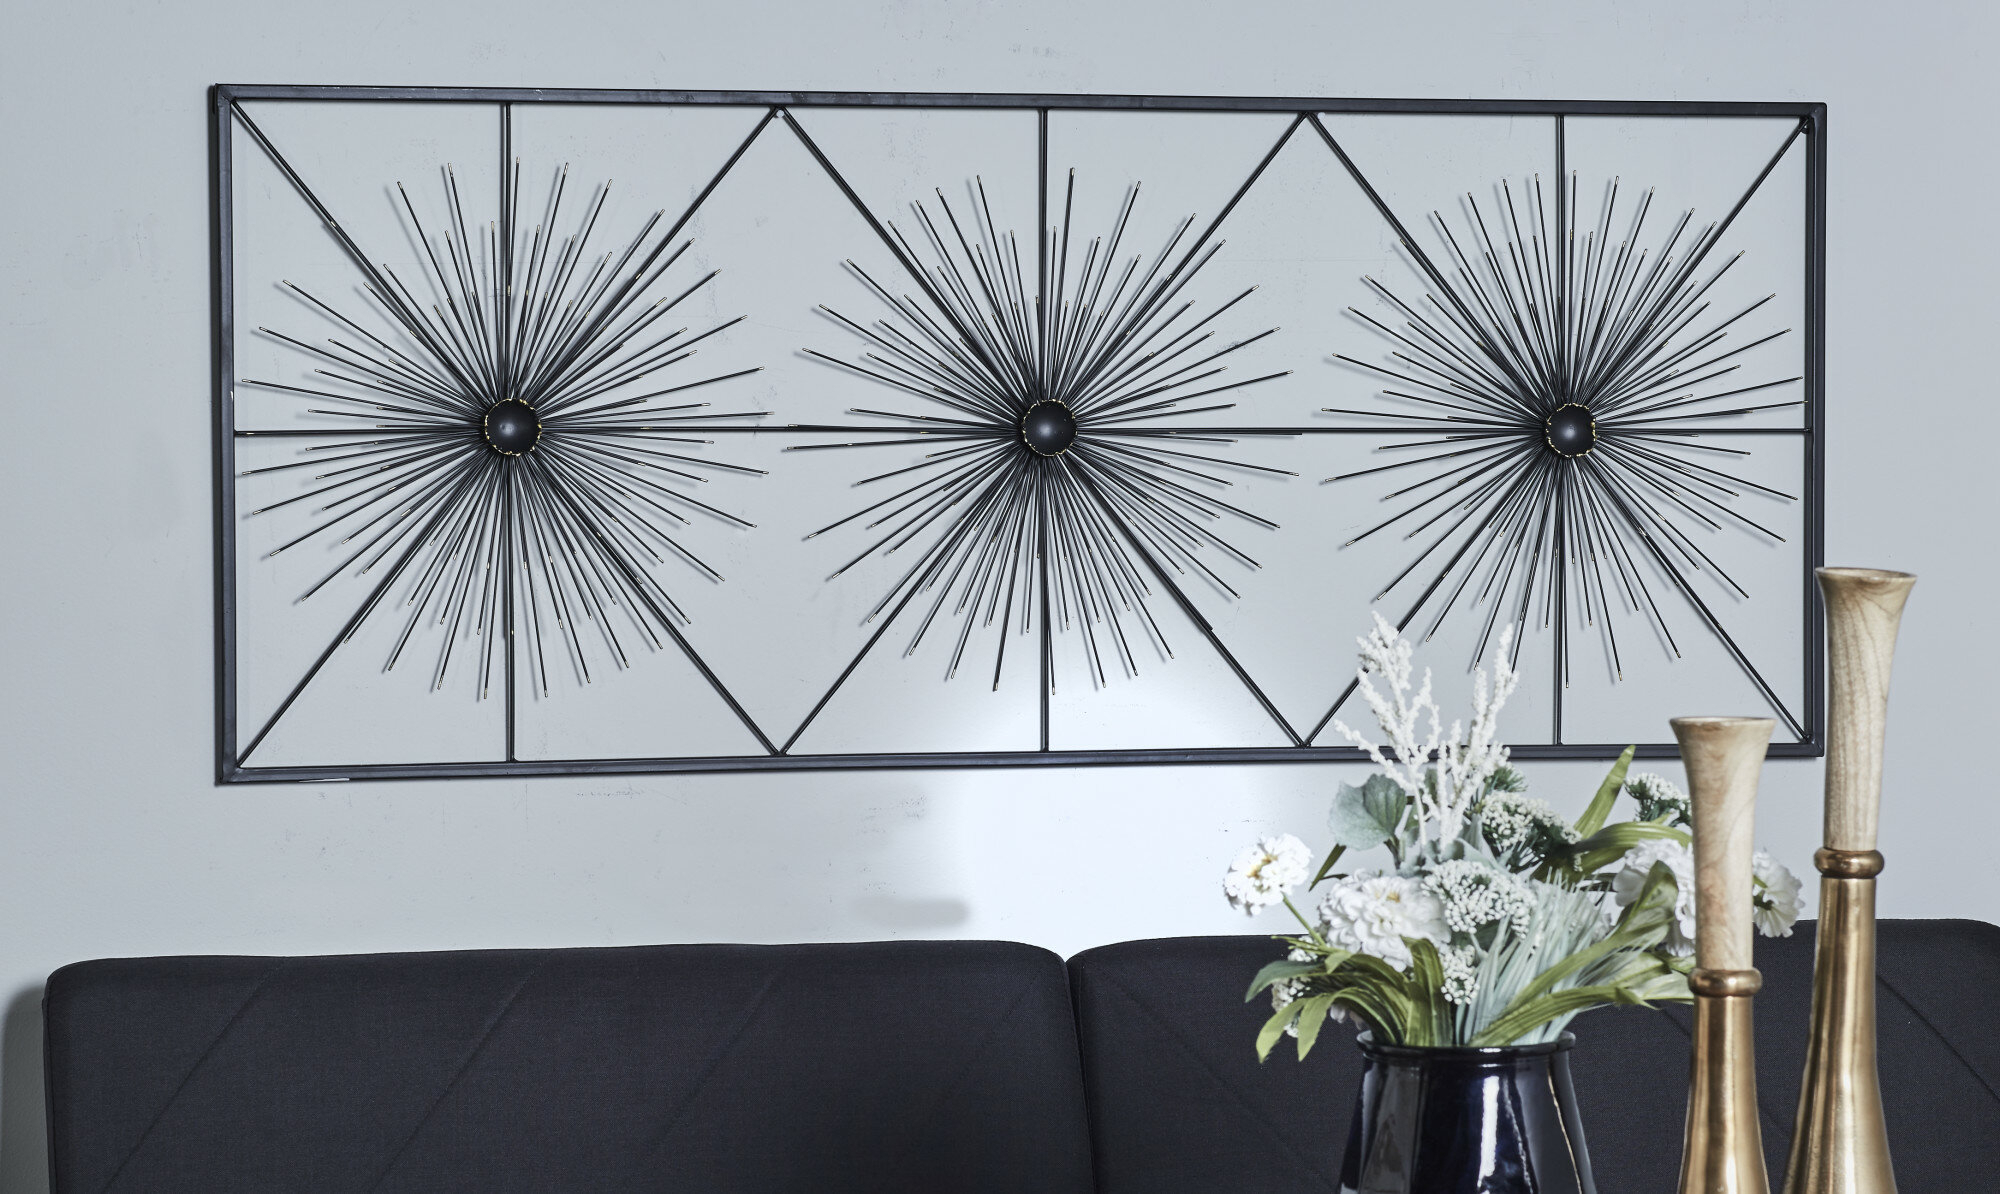 Contemporary Geometric Burst Wall Décor inside Contemporary Geometric Wall Decor (Image 4 of 30)